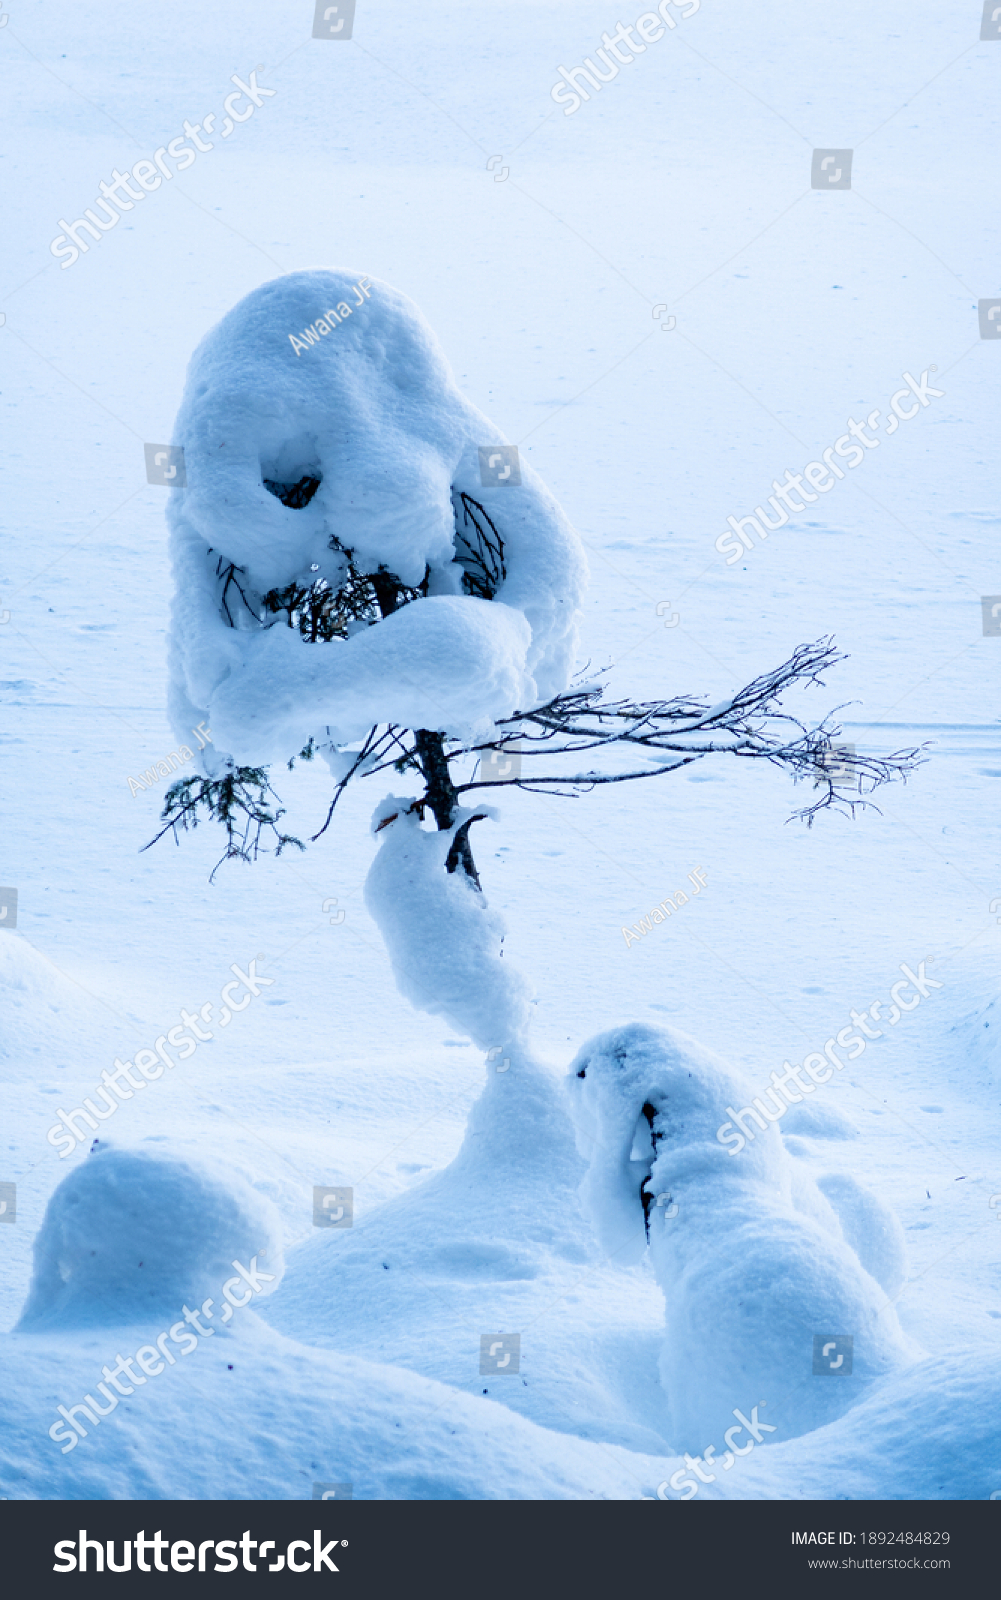 stock-photo-snow-on-a-small-tree-looking